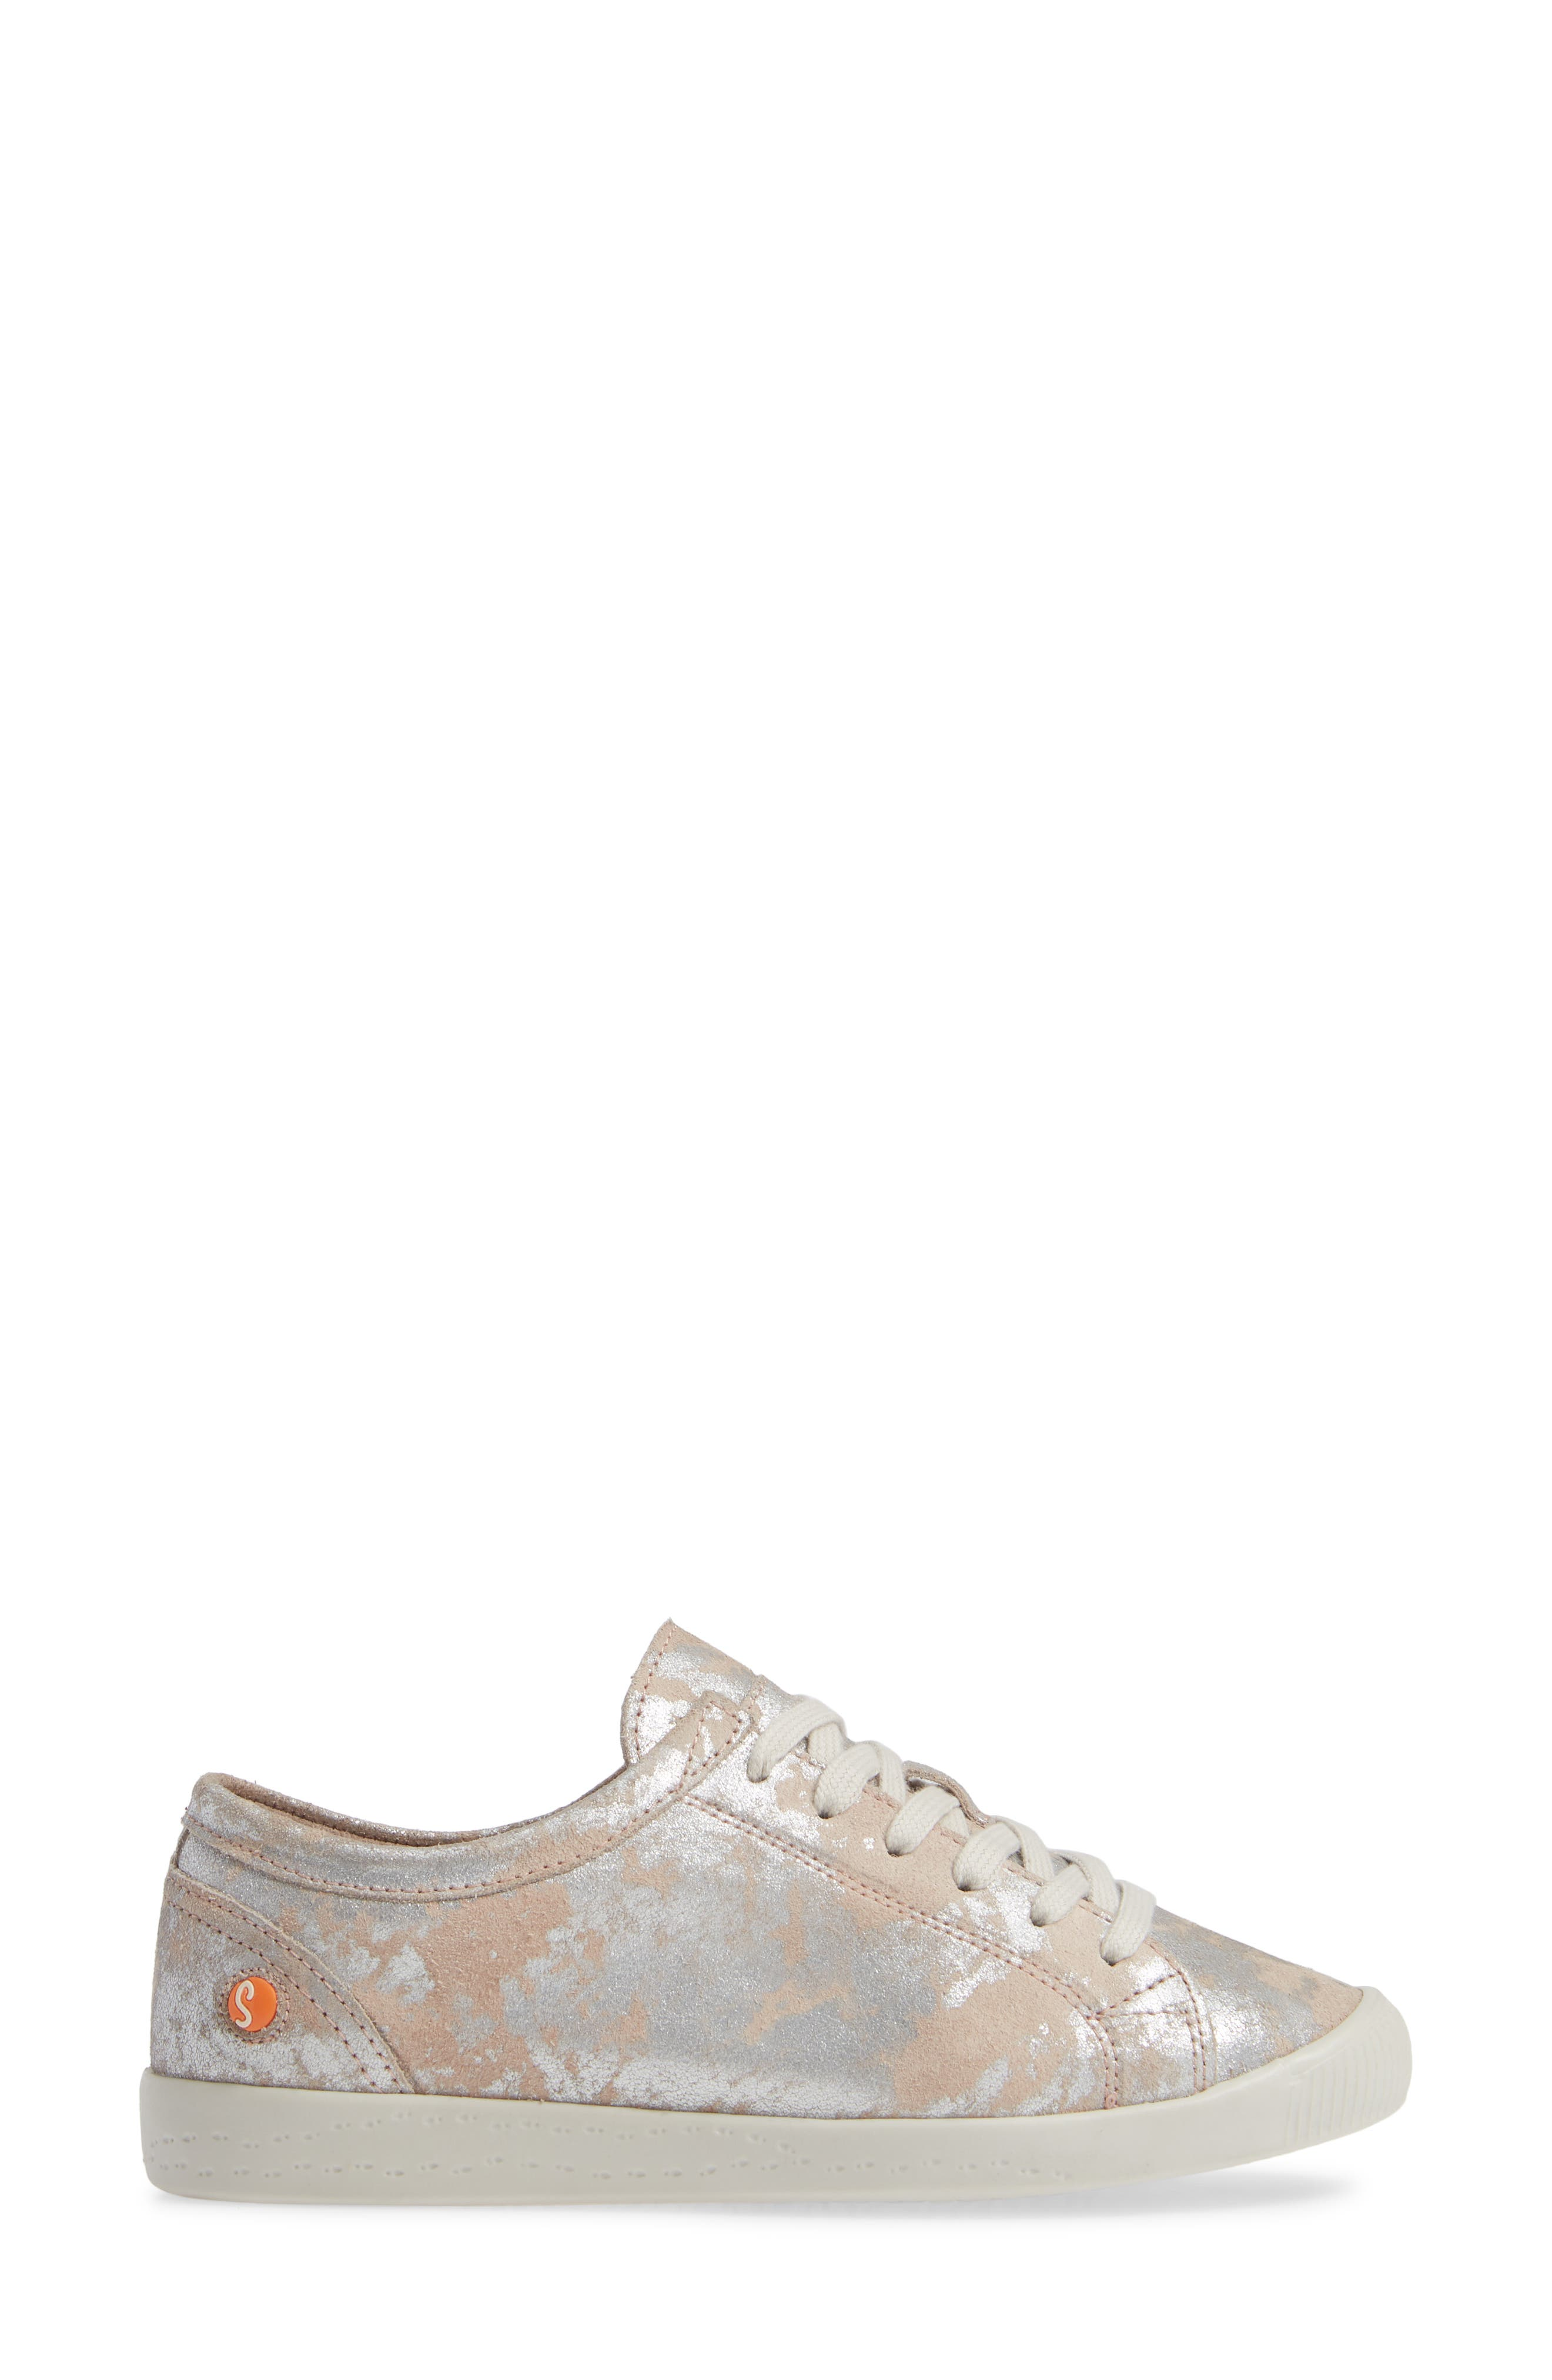 Isla Distressed Sneaker,                             Alternate thumbnail 3, color,                             ROSE LEATHER